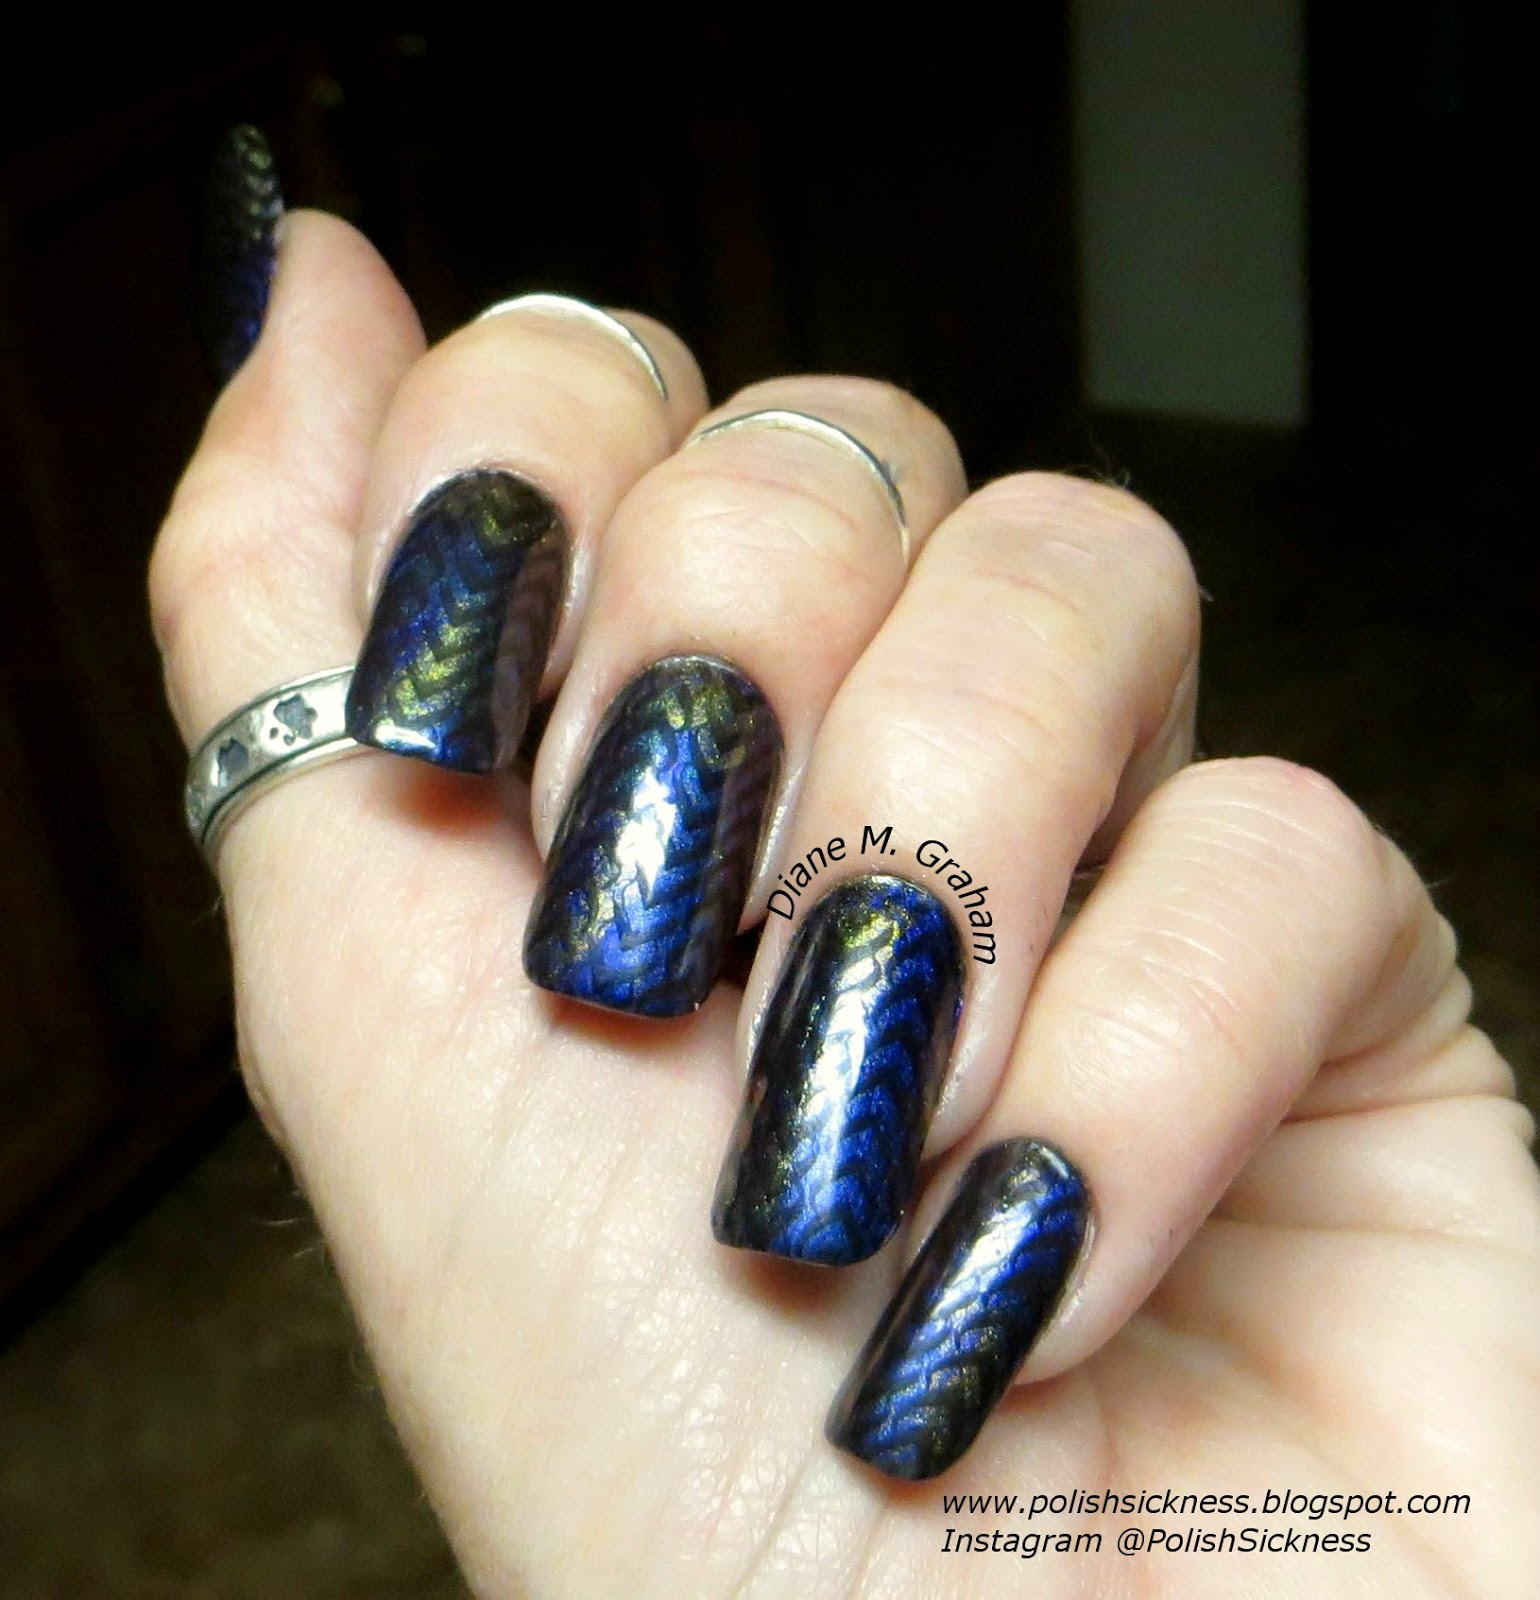 Ludurana Aurora Boreal Emocionate and Show, HITS Trendy, Ninja Polish DRK-C stamp